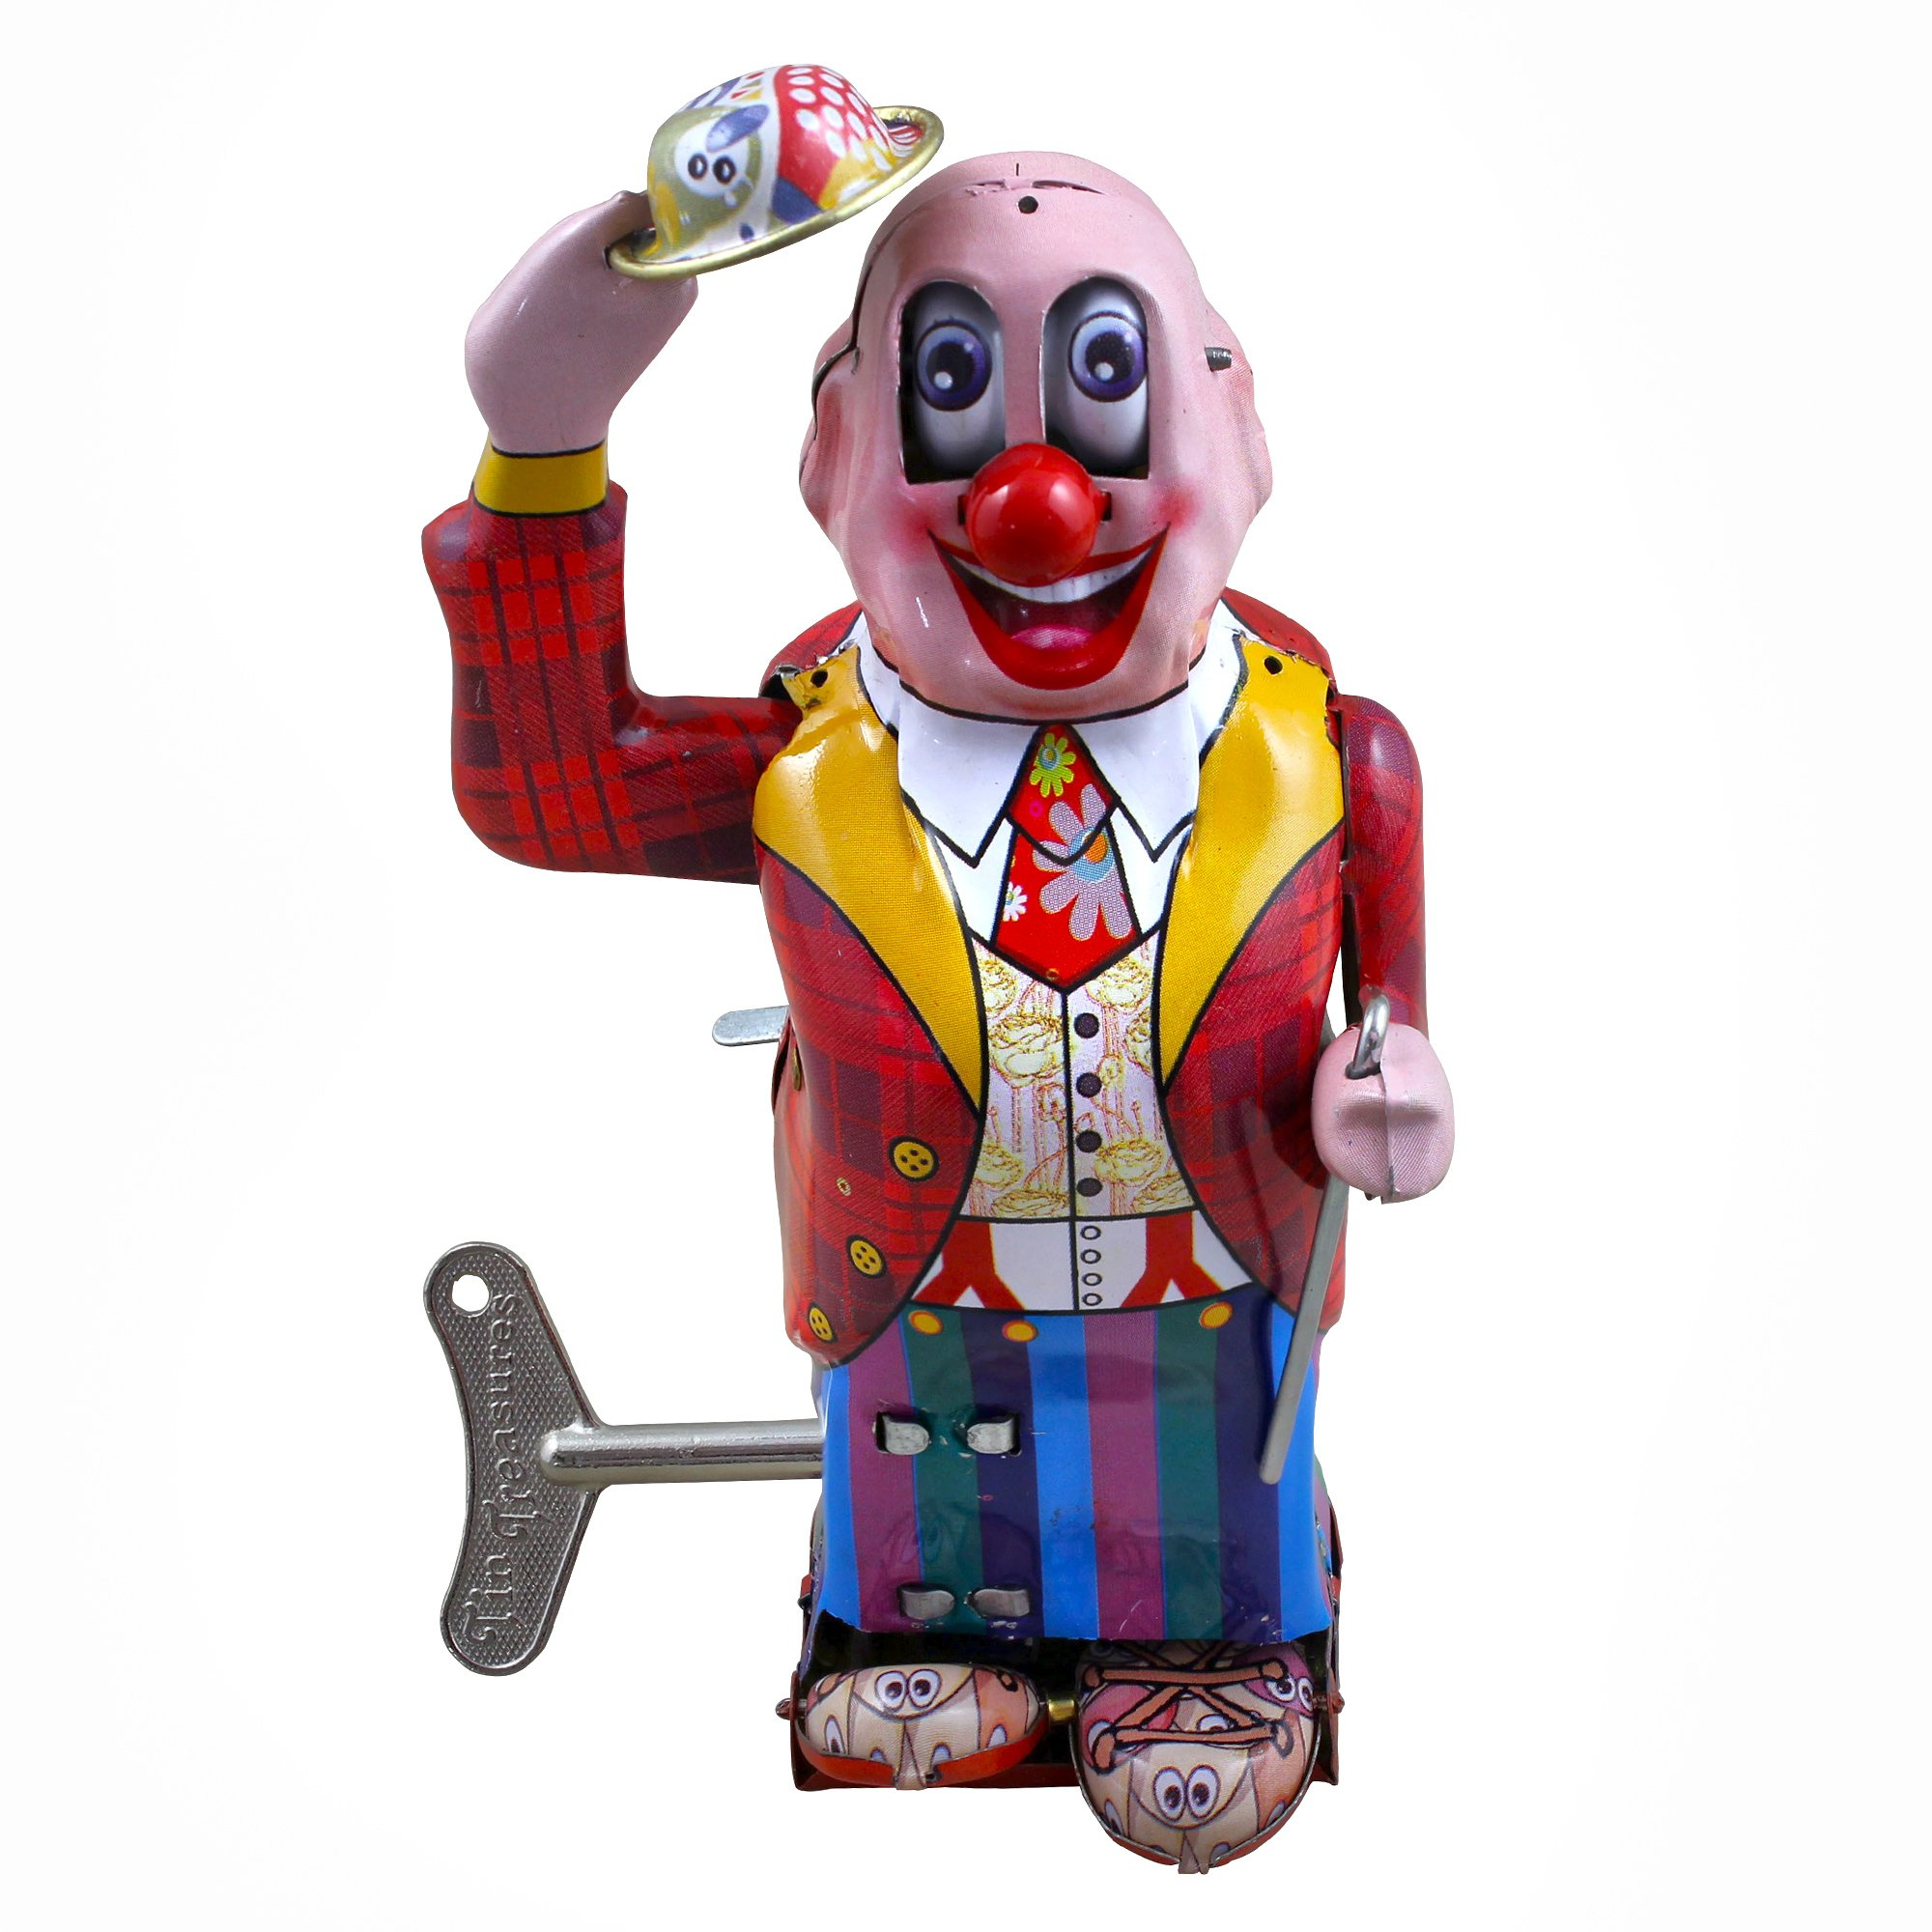 RoyaltyRoute Vintage Wind-up Tin Toys Collectibles Dandy Clown Joker by RoyaltyRoute